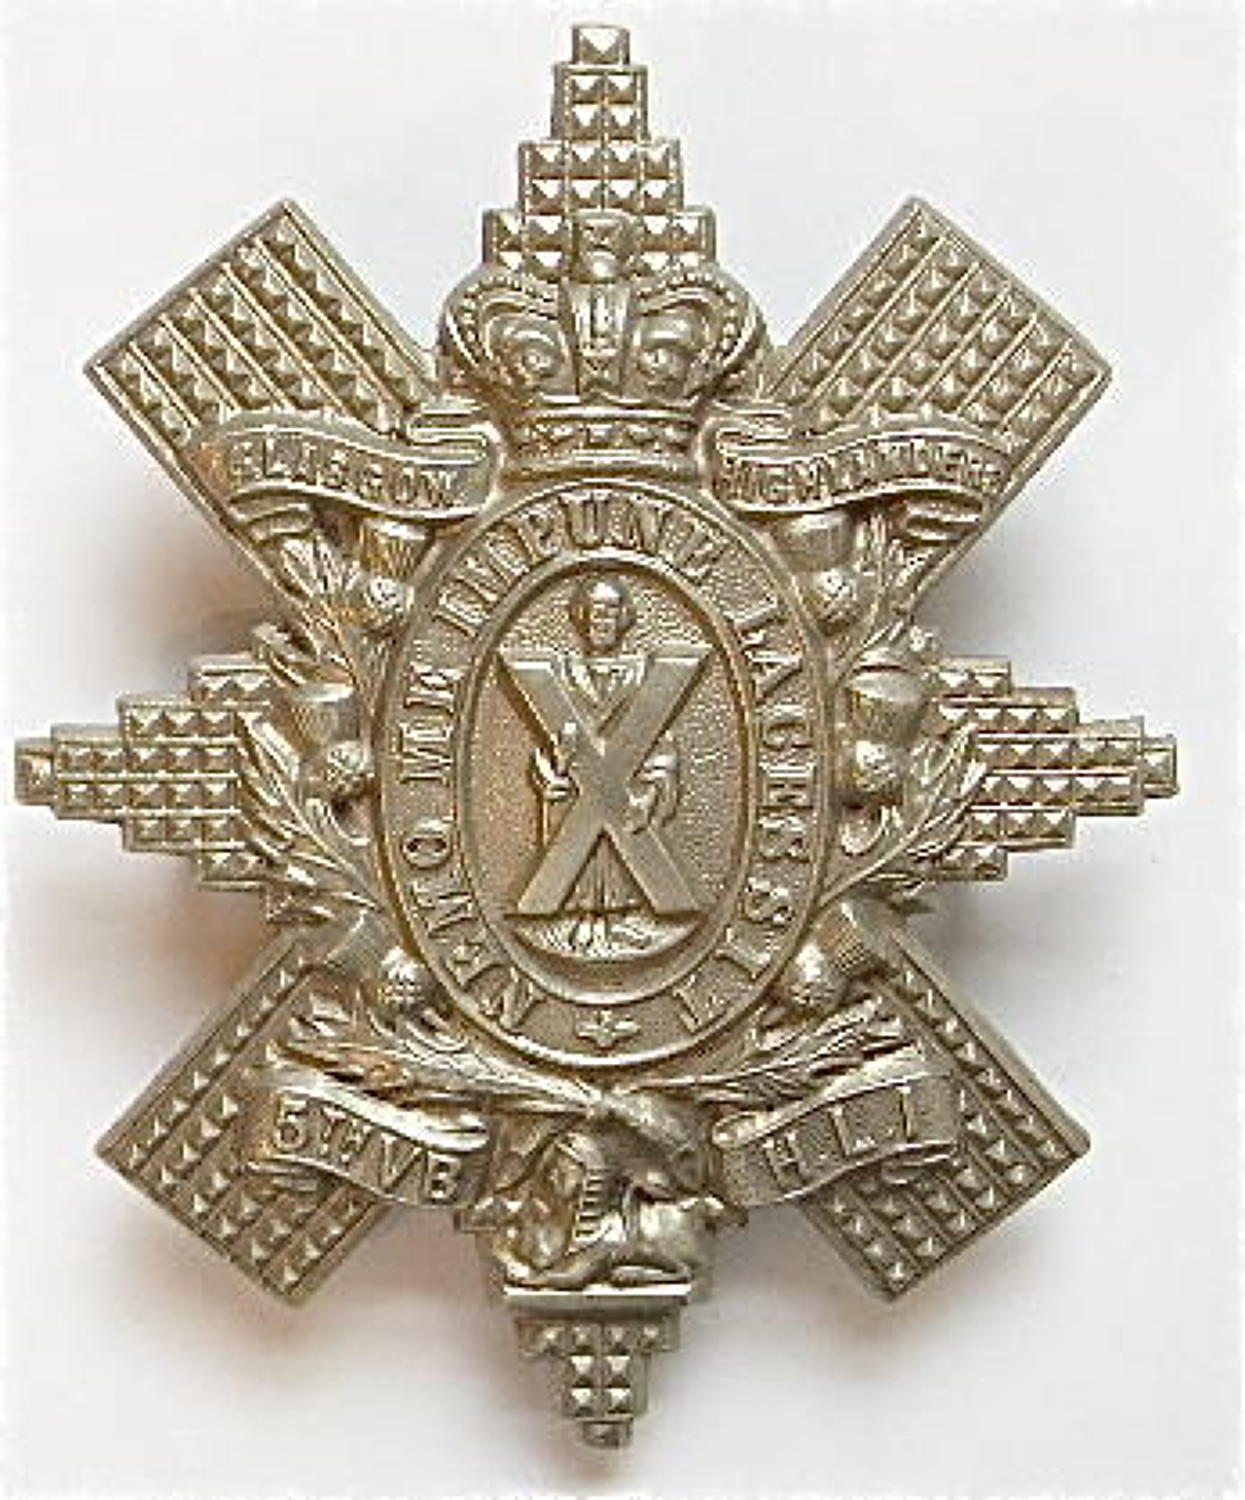 Scottish. 5th VB Highland Light Infantry Victorian glengarry badge cir